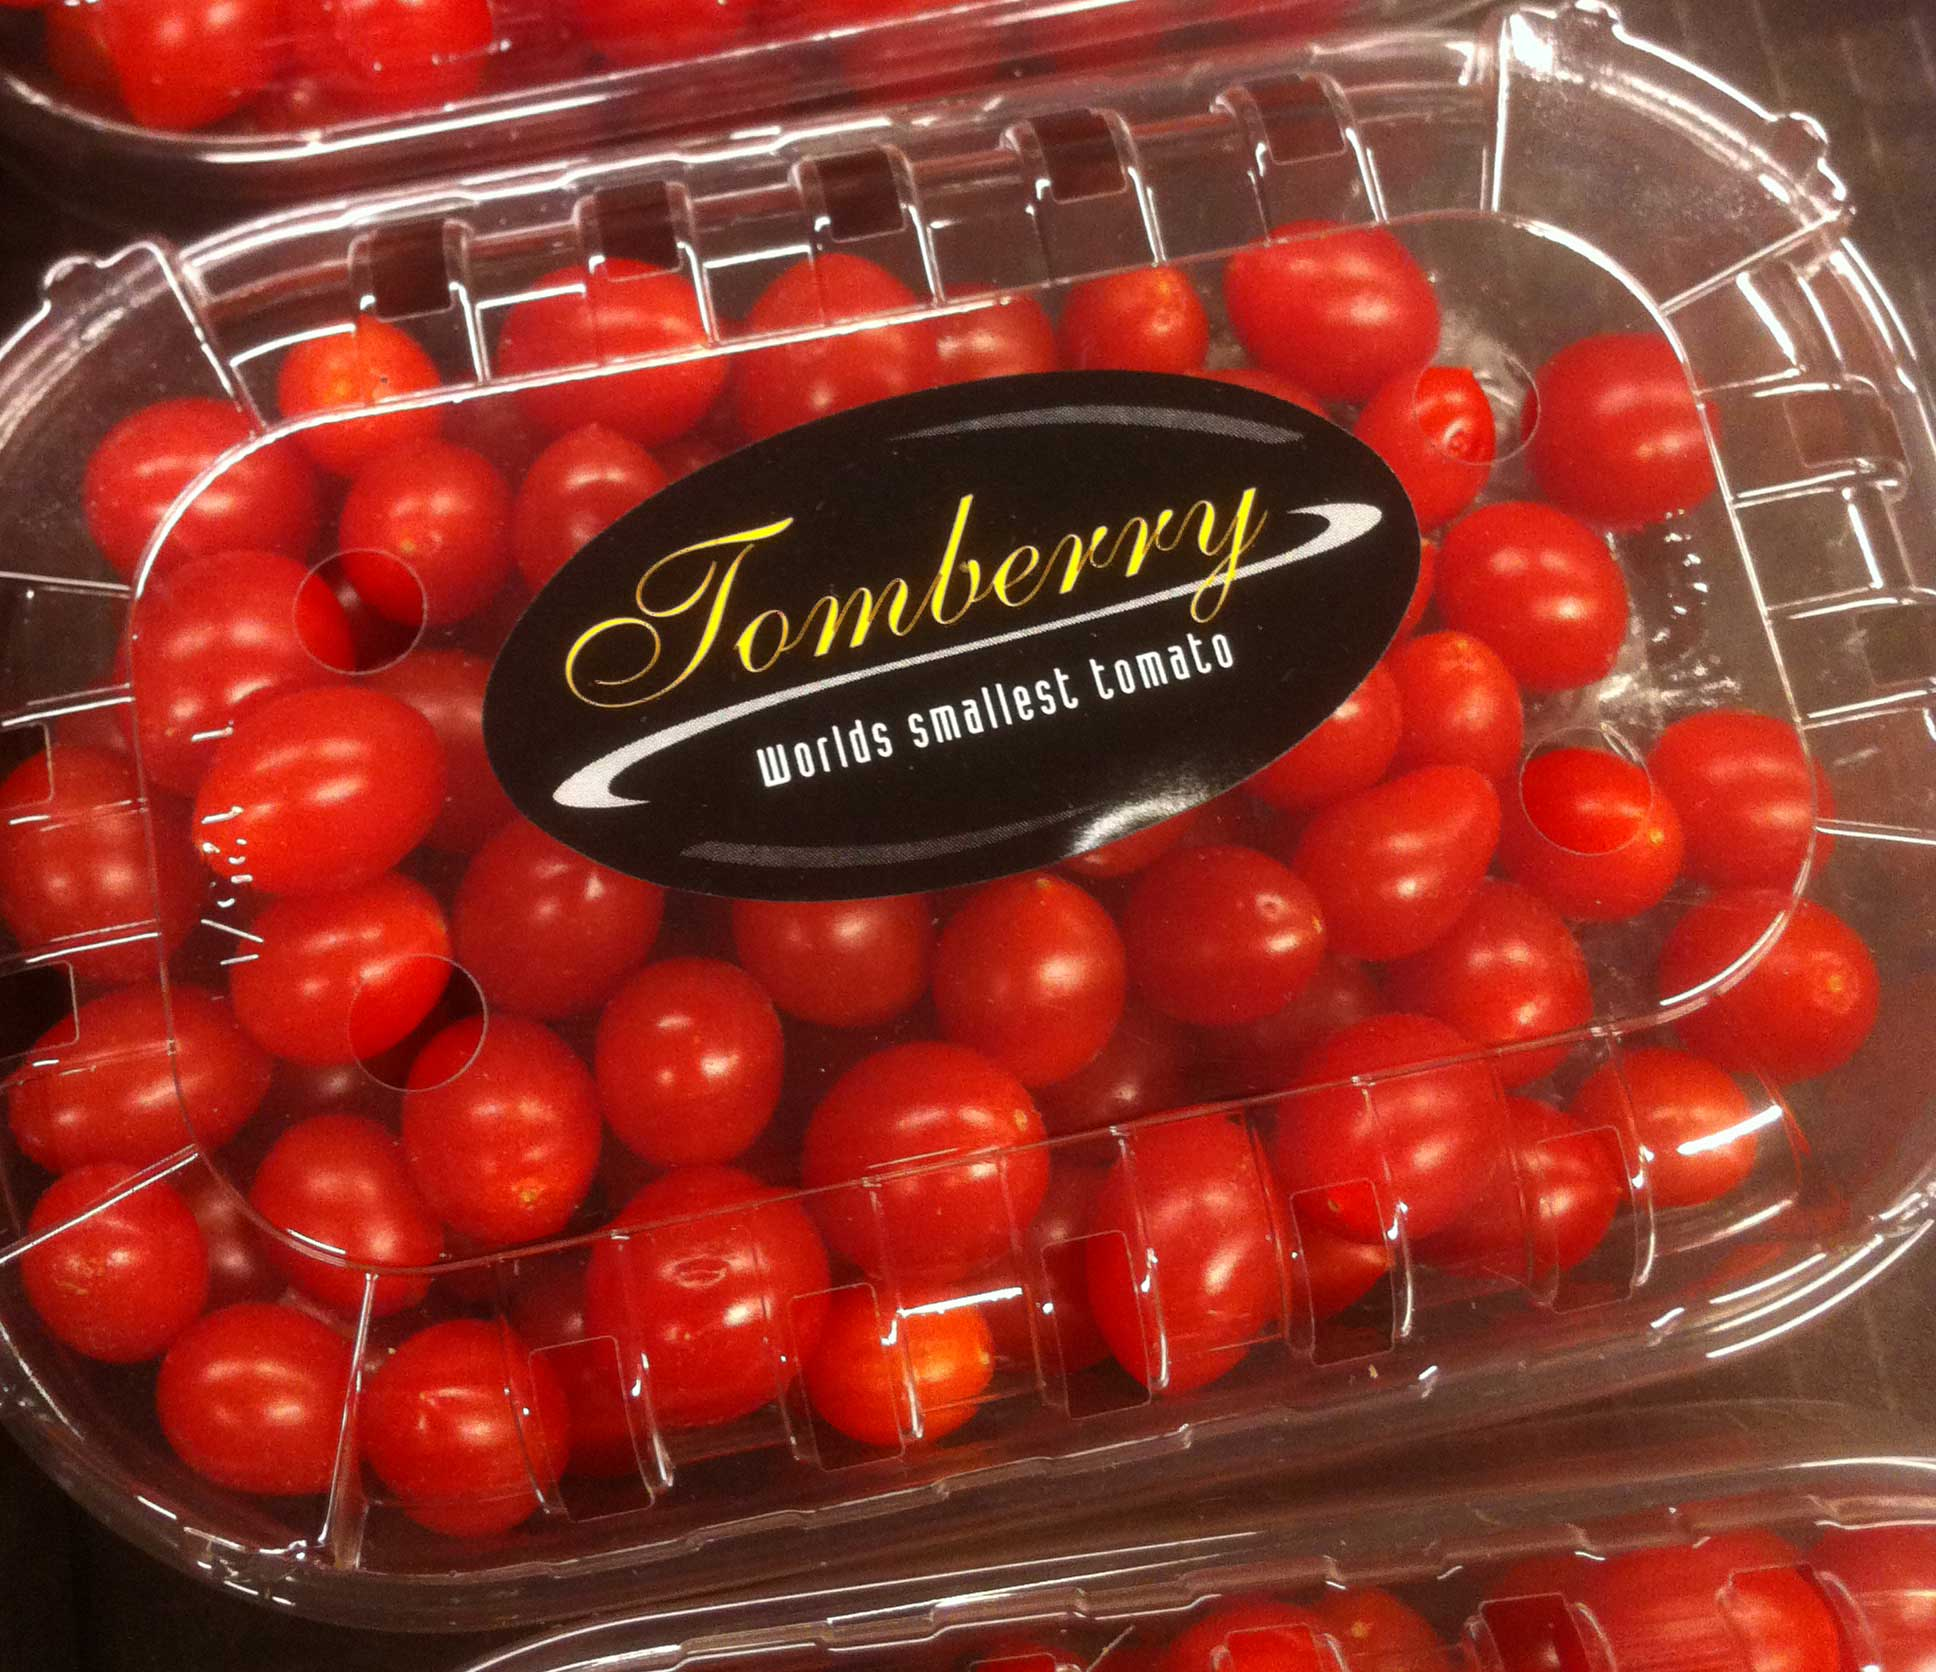 Visual of Tomberry – The Worlds Smallest Tomato